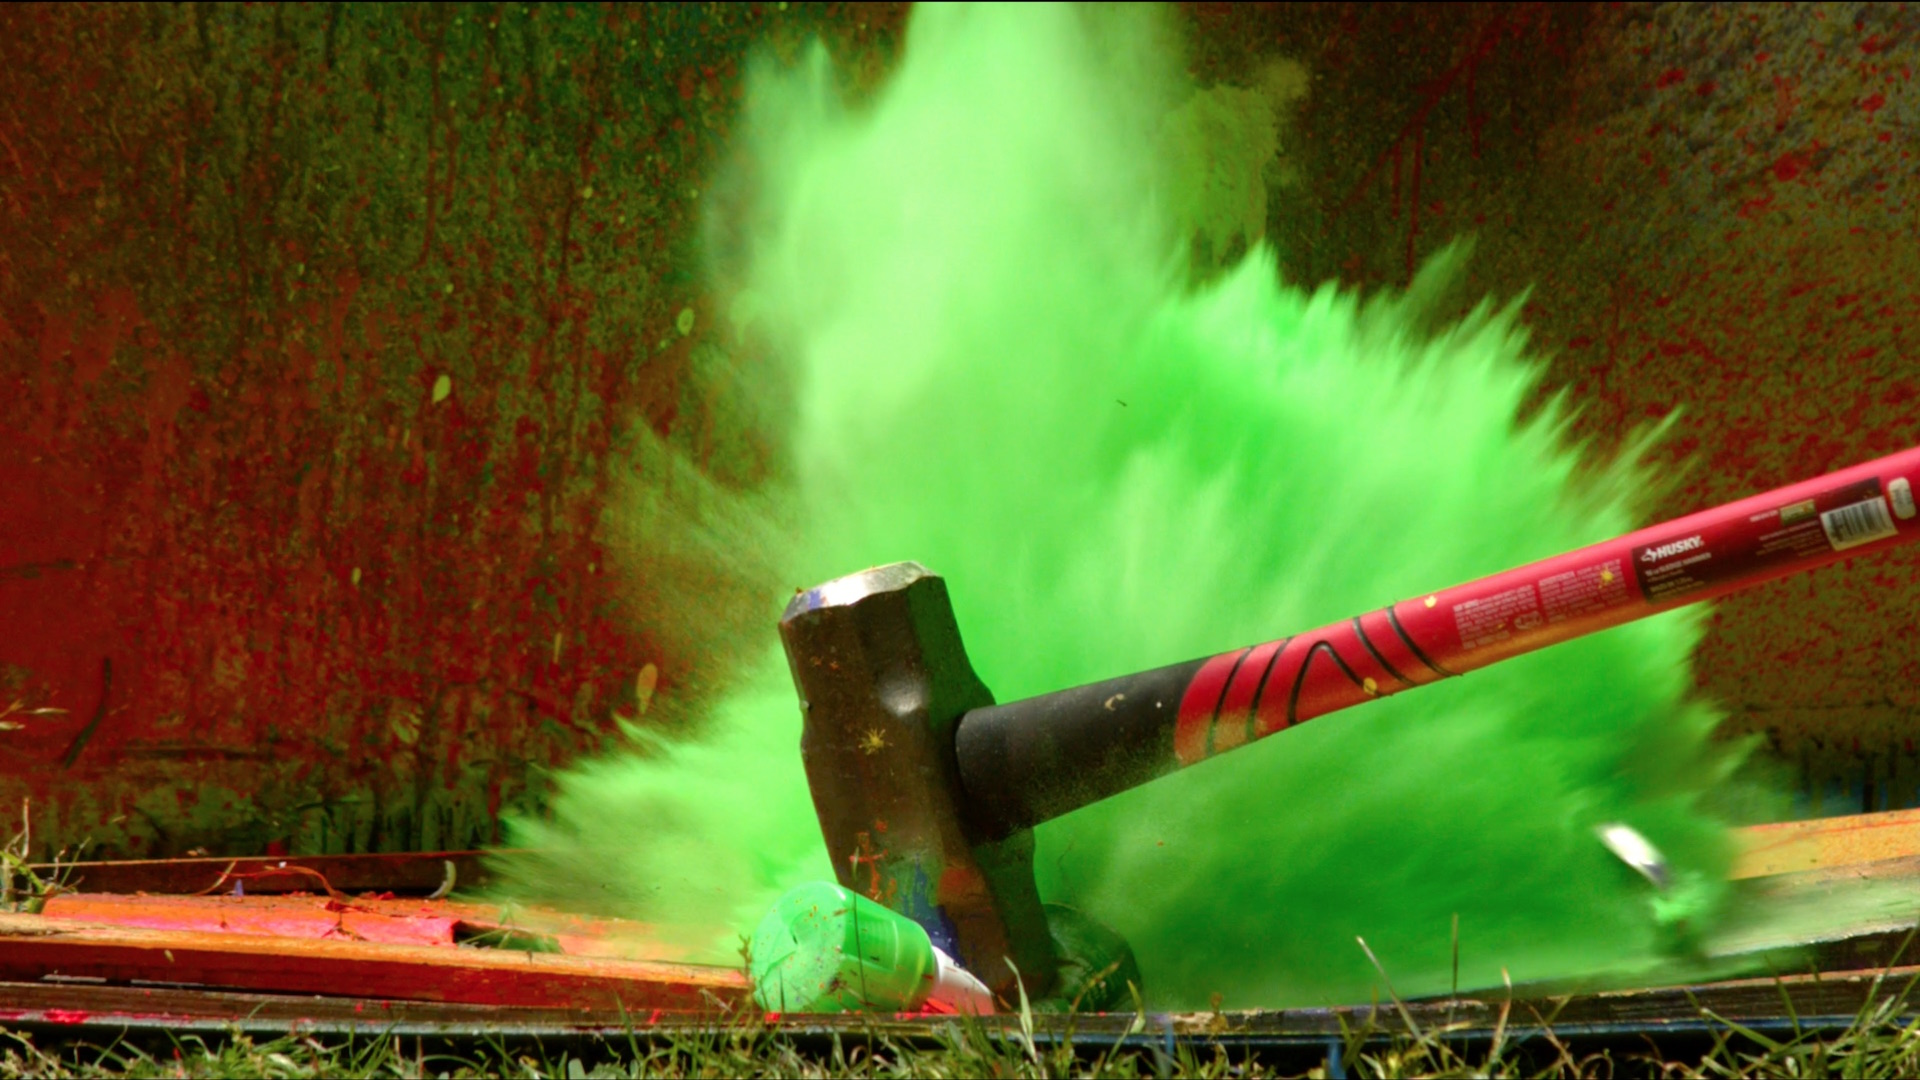 The Slow Mo Guys Season - Putting paint on a drum kit creates an explosive rainbow